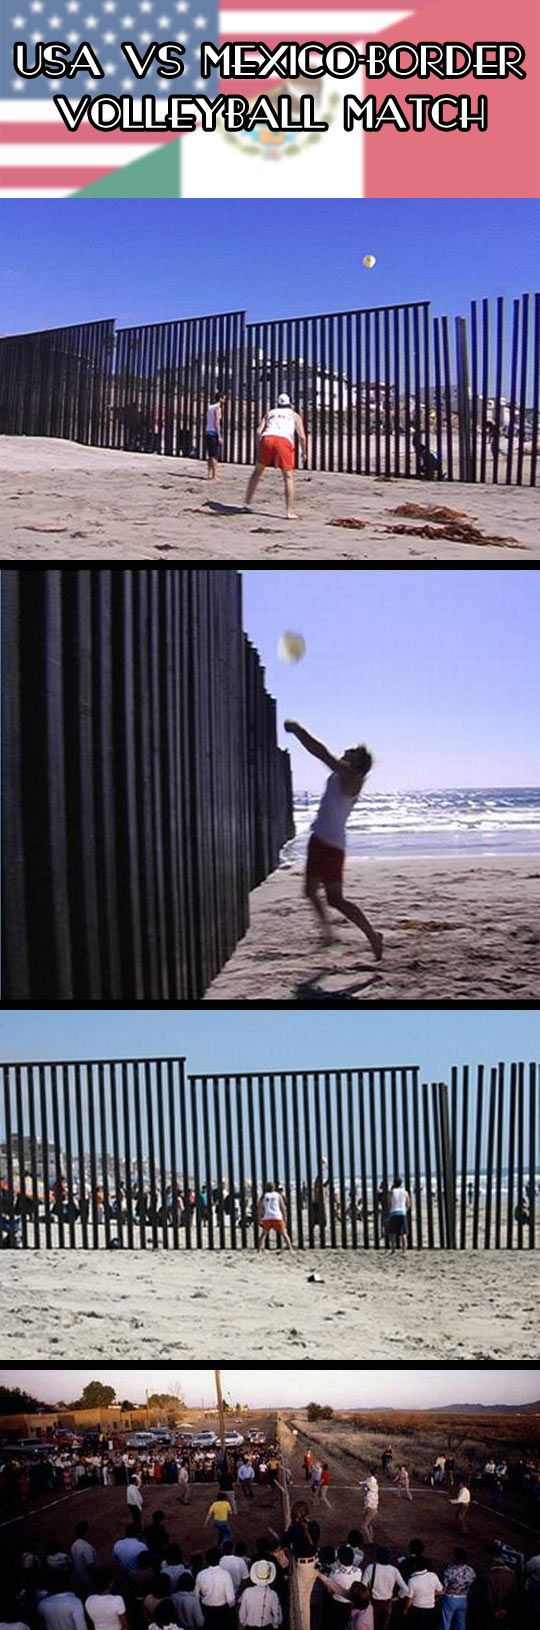 USA/Mexico border volleyball